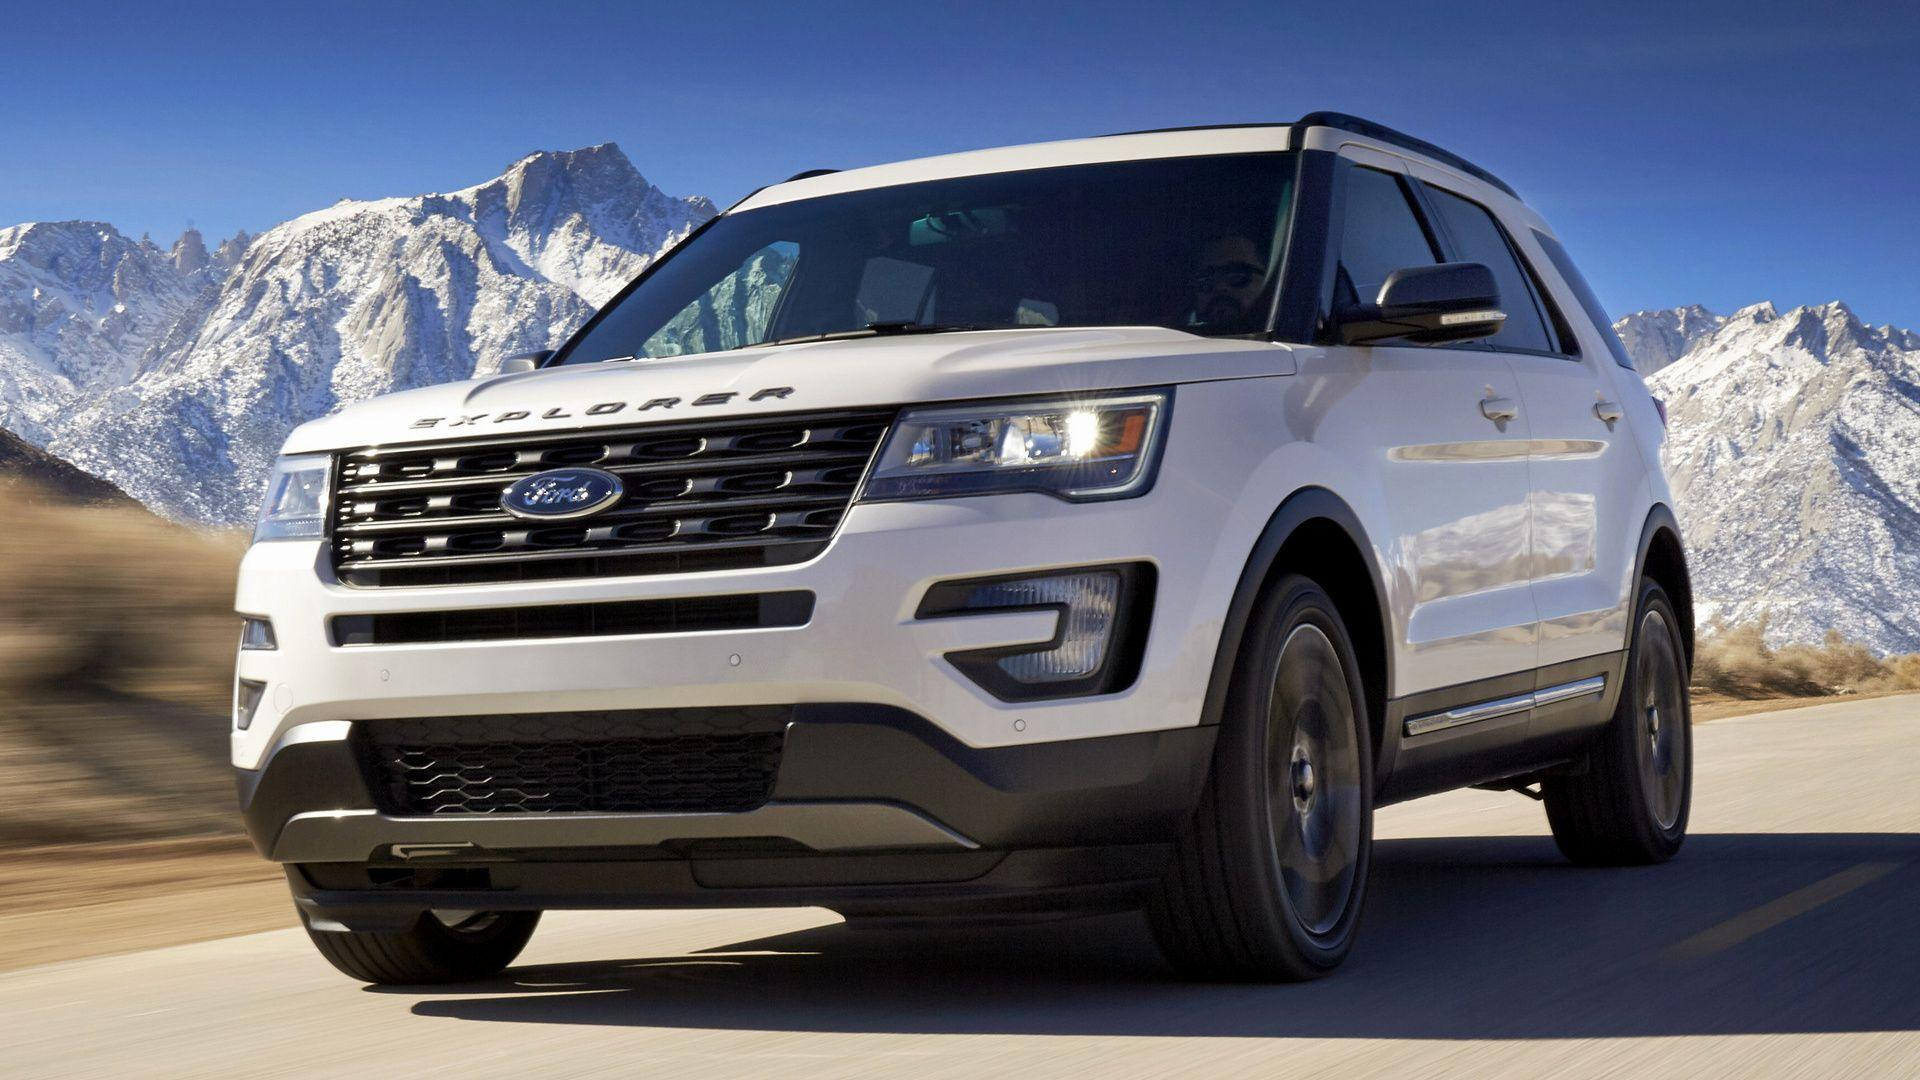 Ford Explorer Wallpapers 9